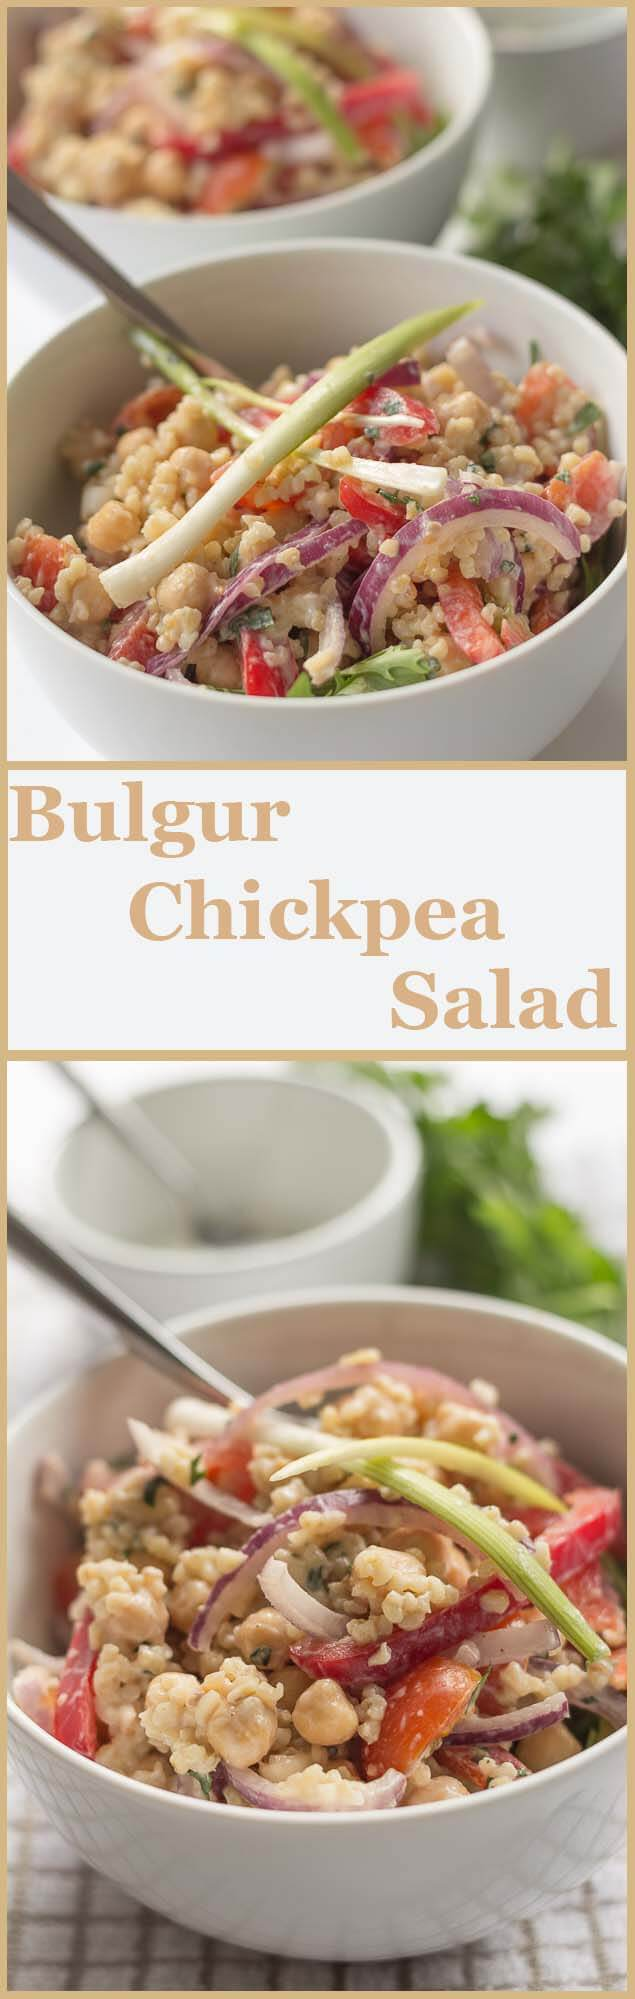 This bulgur chickpea salad has a lovely creamy yogurt and fresh herb dressing, and combined with all the fresh ingredients it makes such a nutritious, filling dish.